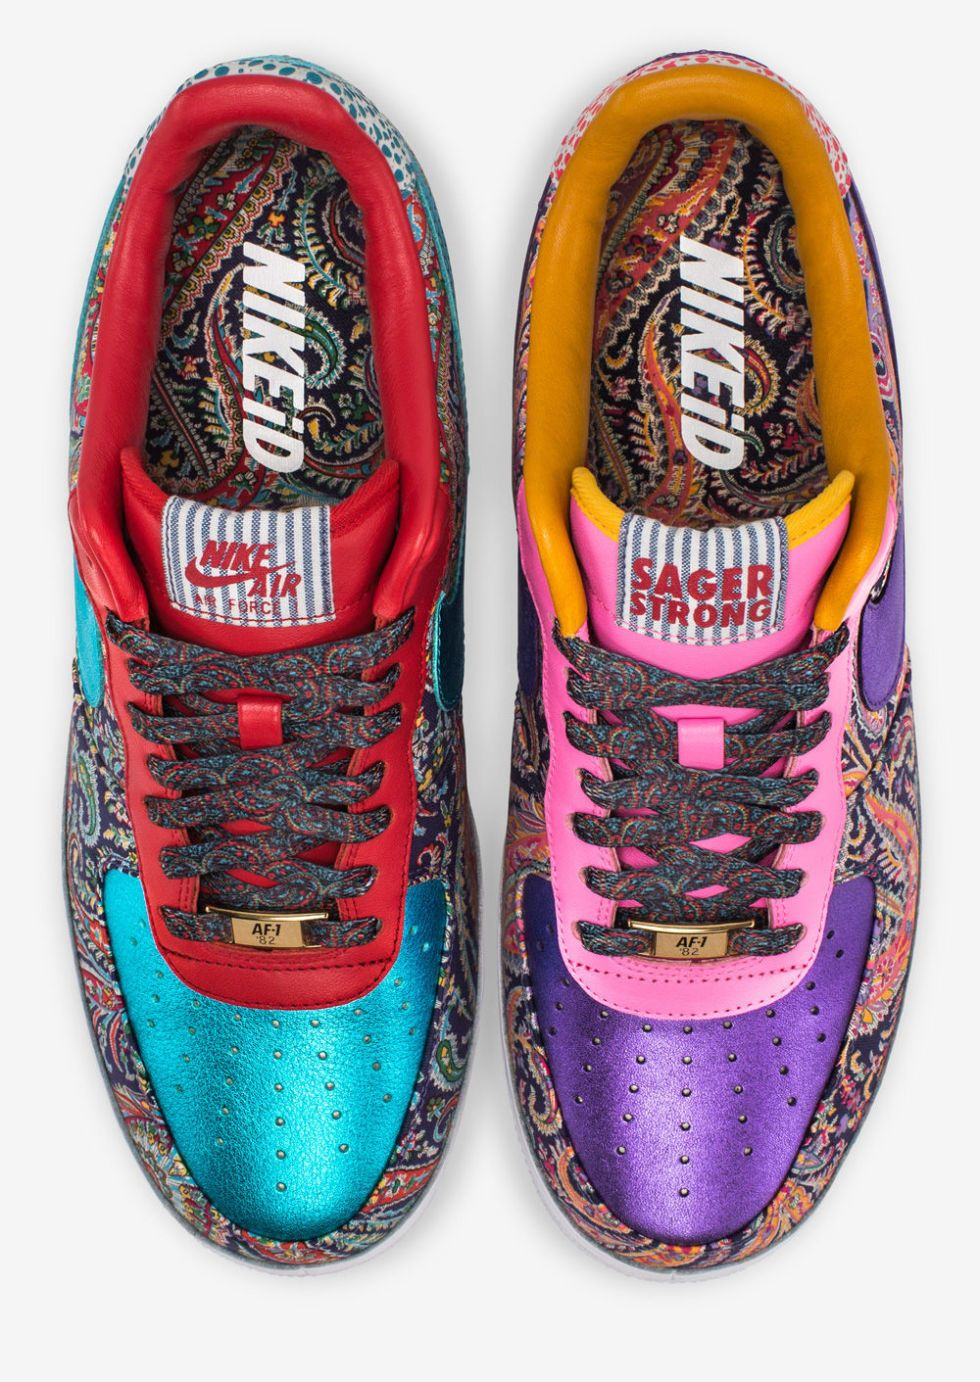 e72f7e1aaae7 These Custom Craig Sager Air Force 1s Are Absurd—and Amazing